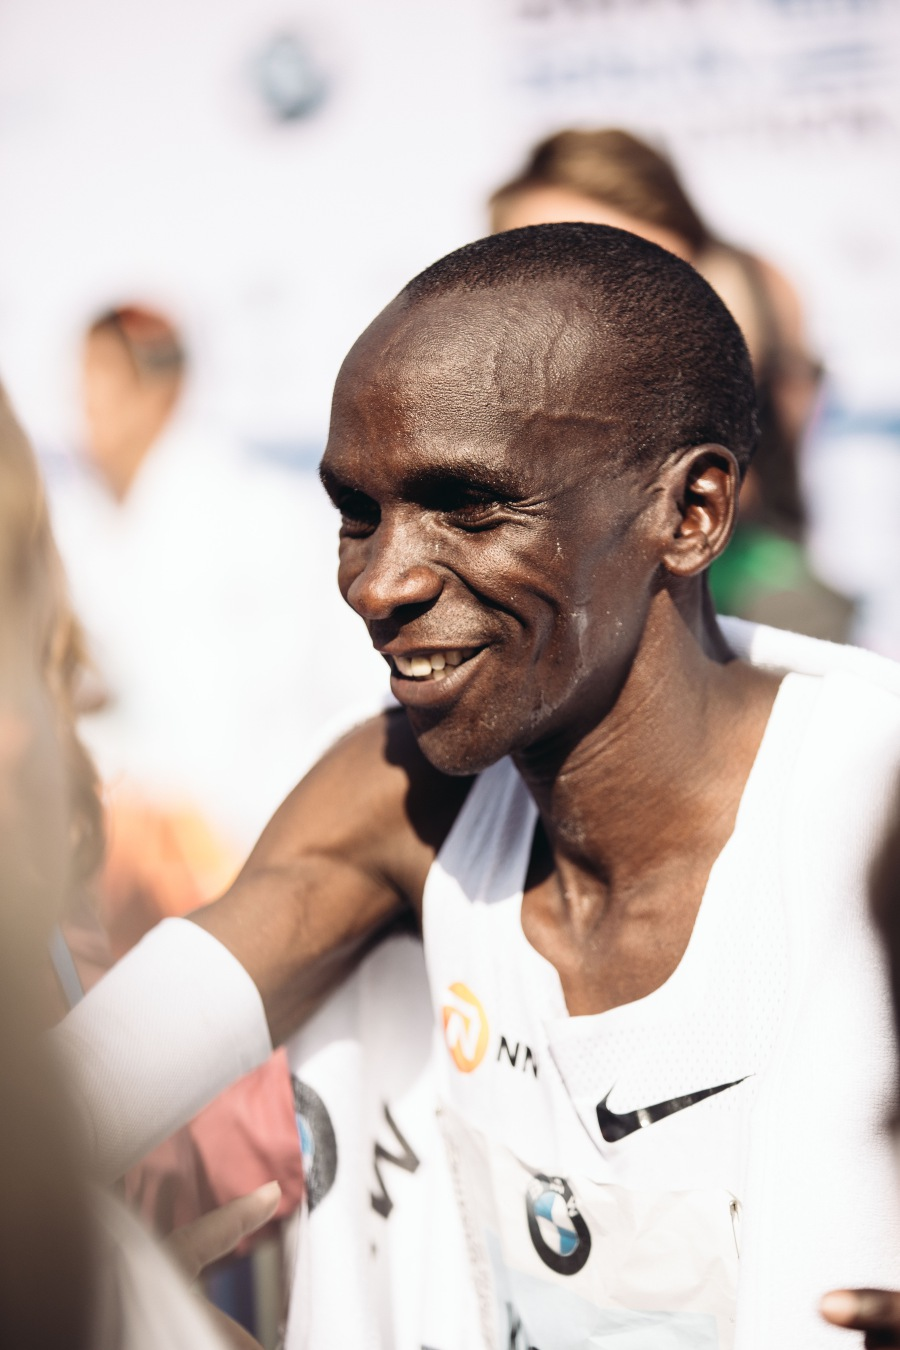 c3c8a4446f7be Kipchoge broke the four-year old world record at the Berlin marathon.(Pictures  courtesy of Nike)